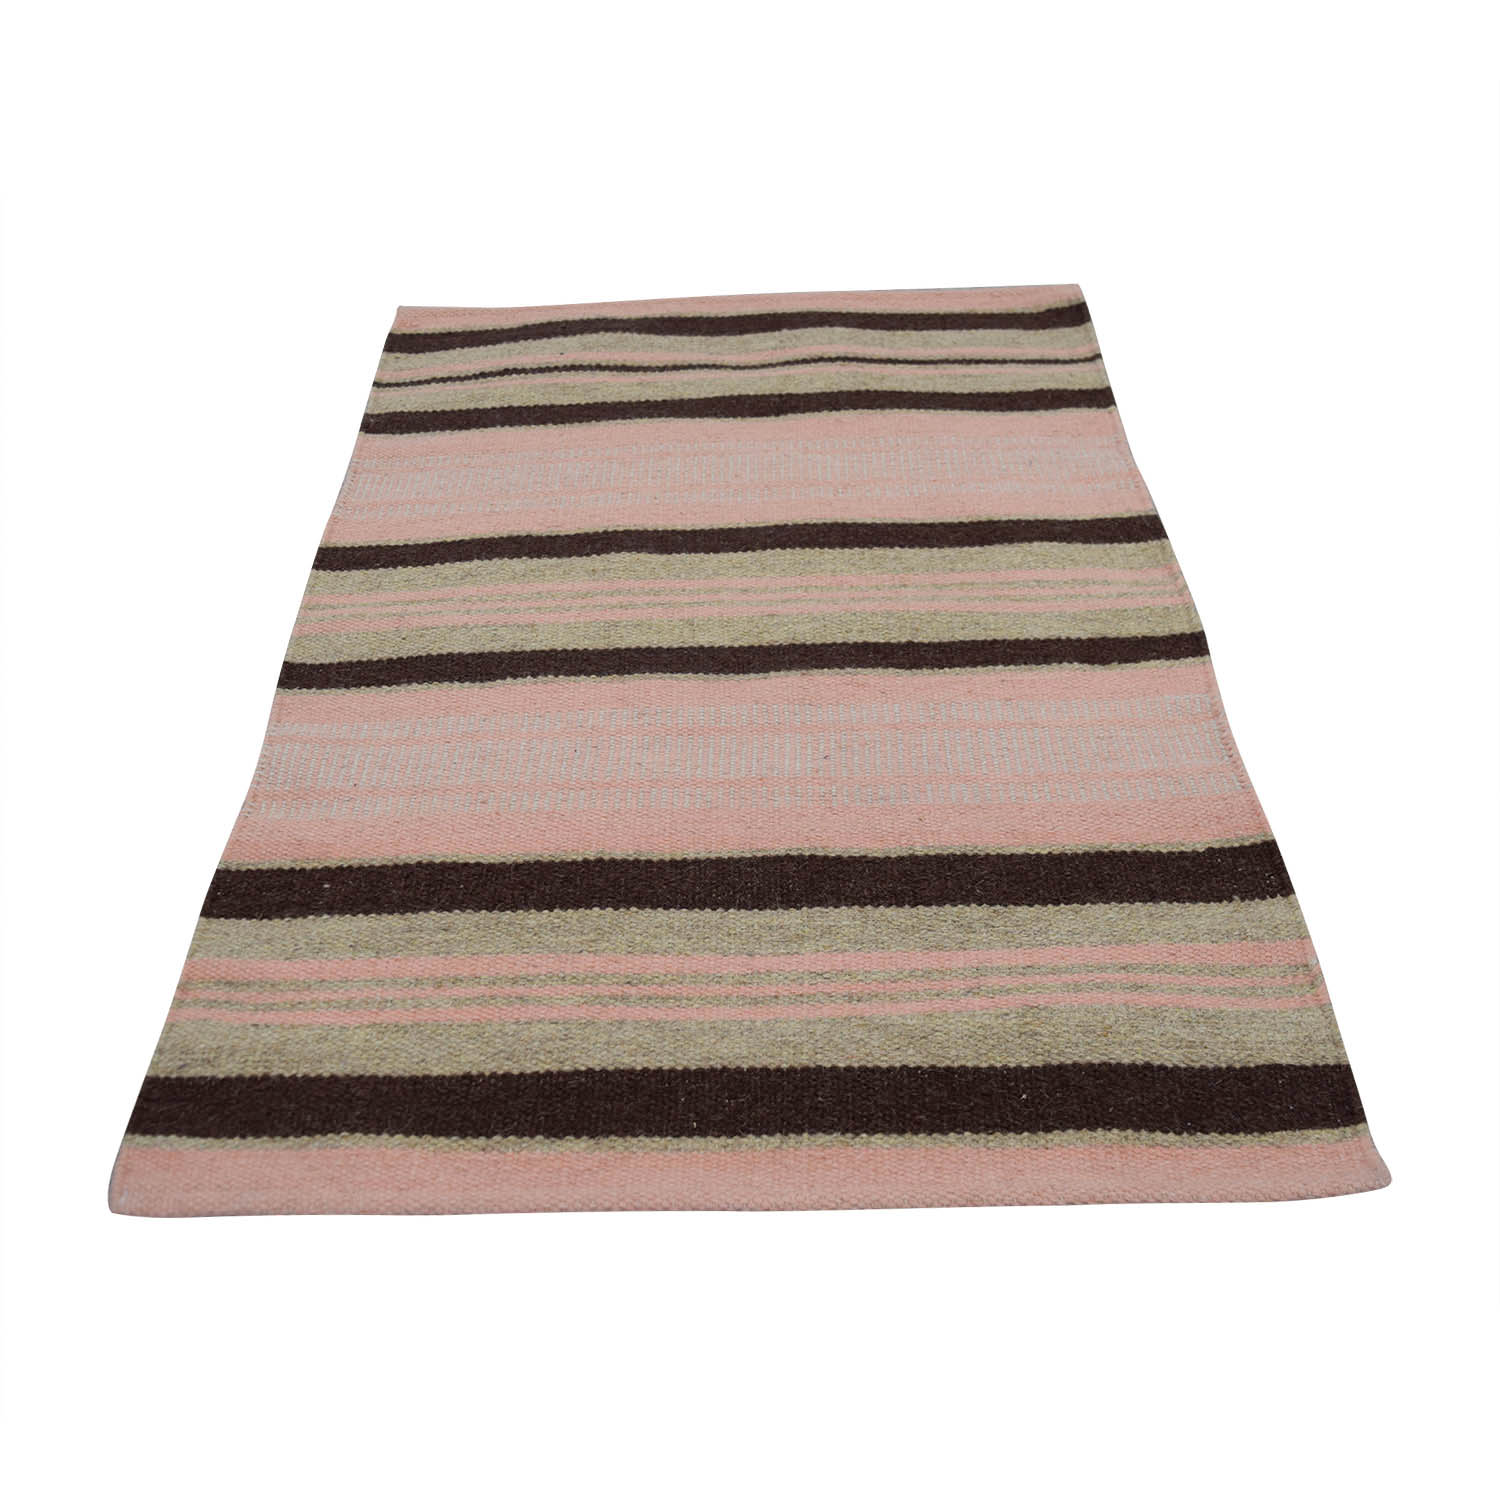 Obeetee Obeetee 2x3 Pink Brown and Tan Rug